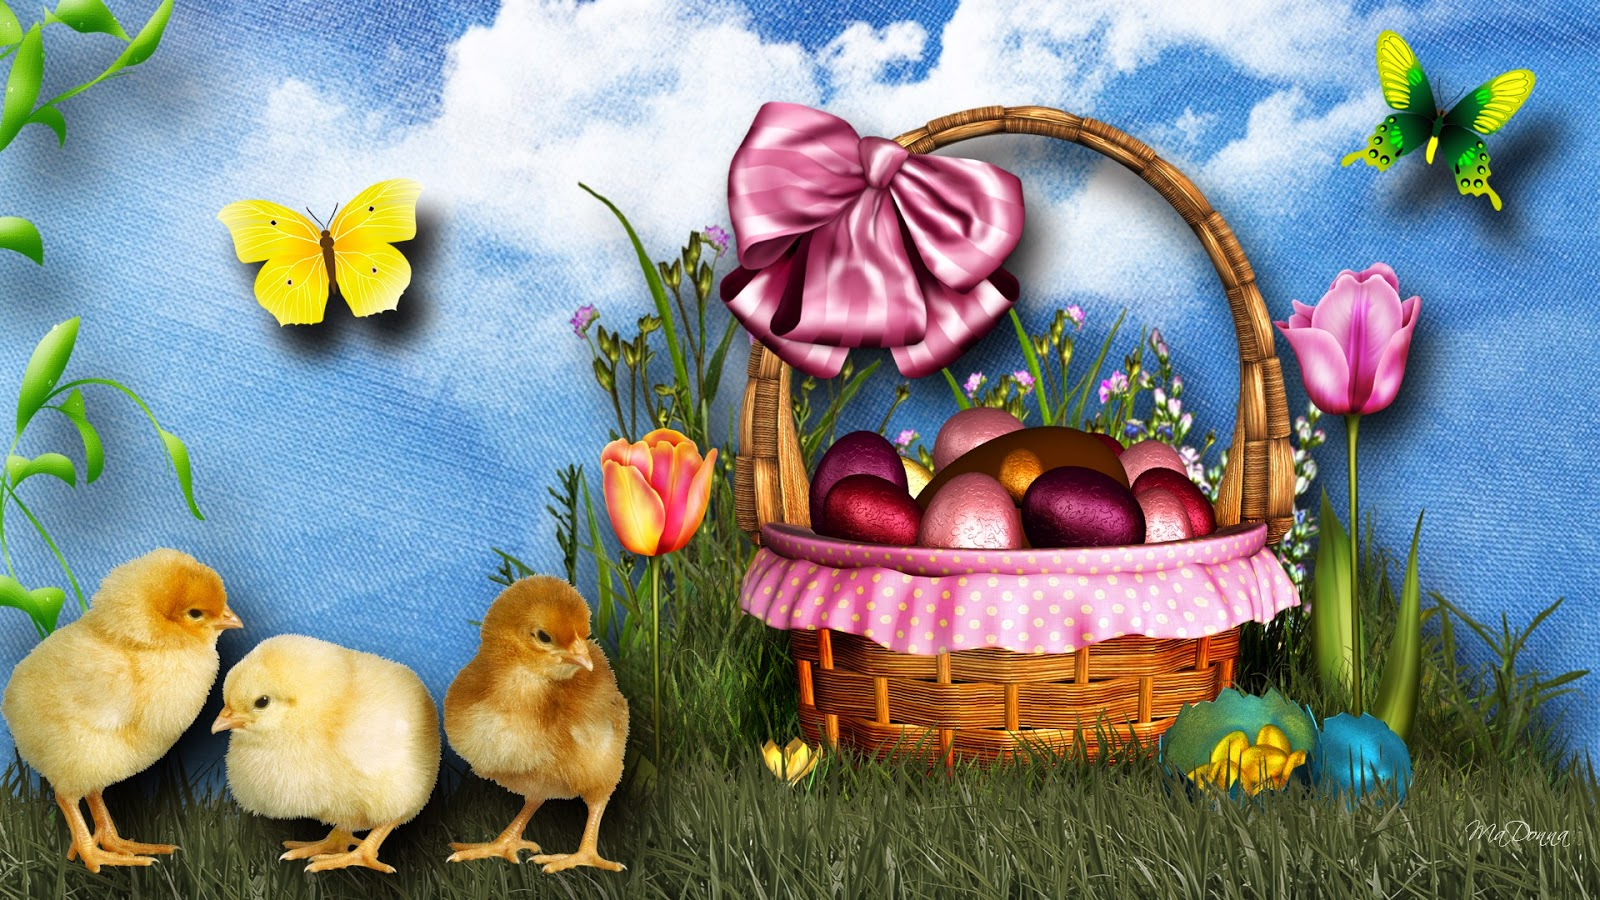 Easter Holiday 2015 April Wallpapers Wishes Happy